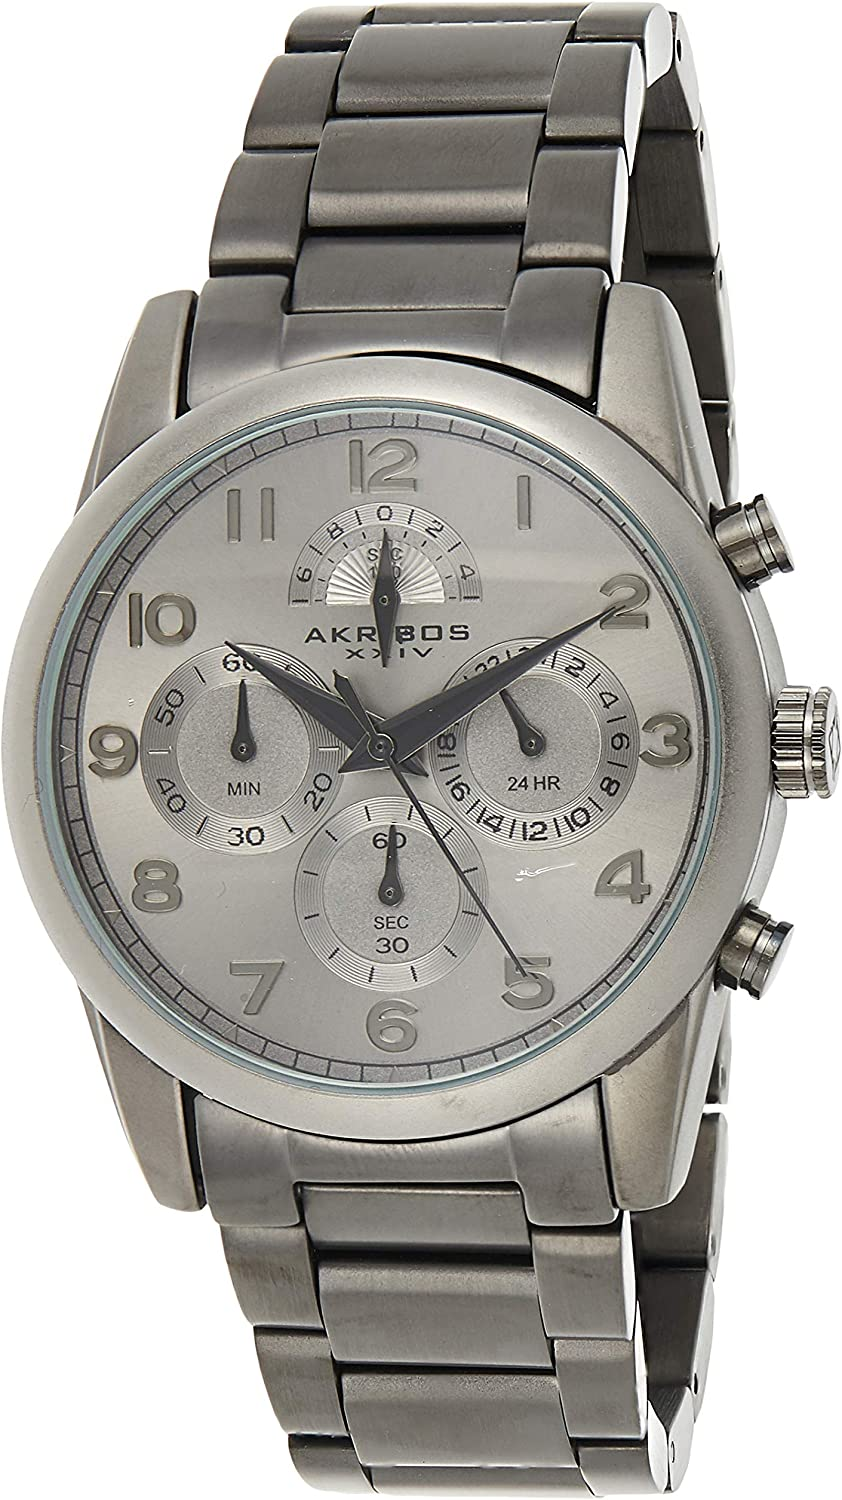 Akribos Chronograph Multifunction Men's Watch OFFicial site Brand Cheap Sale Venue Sub-dials - Stai 4